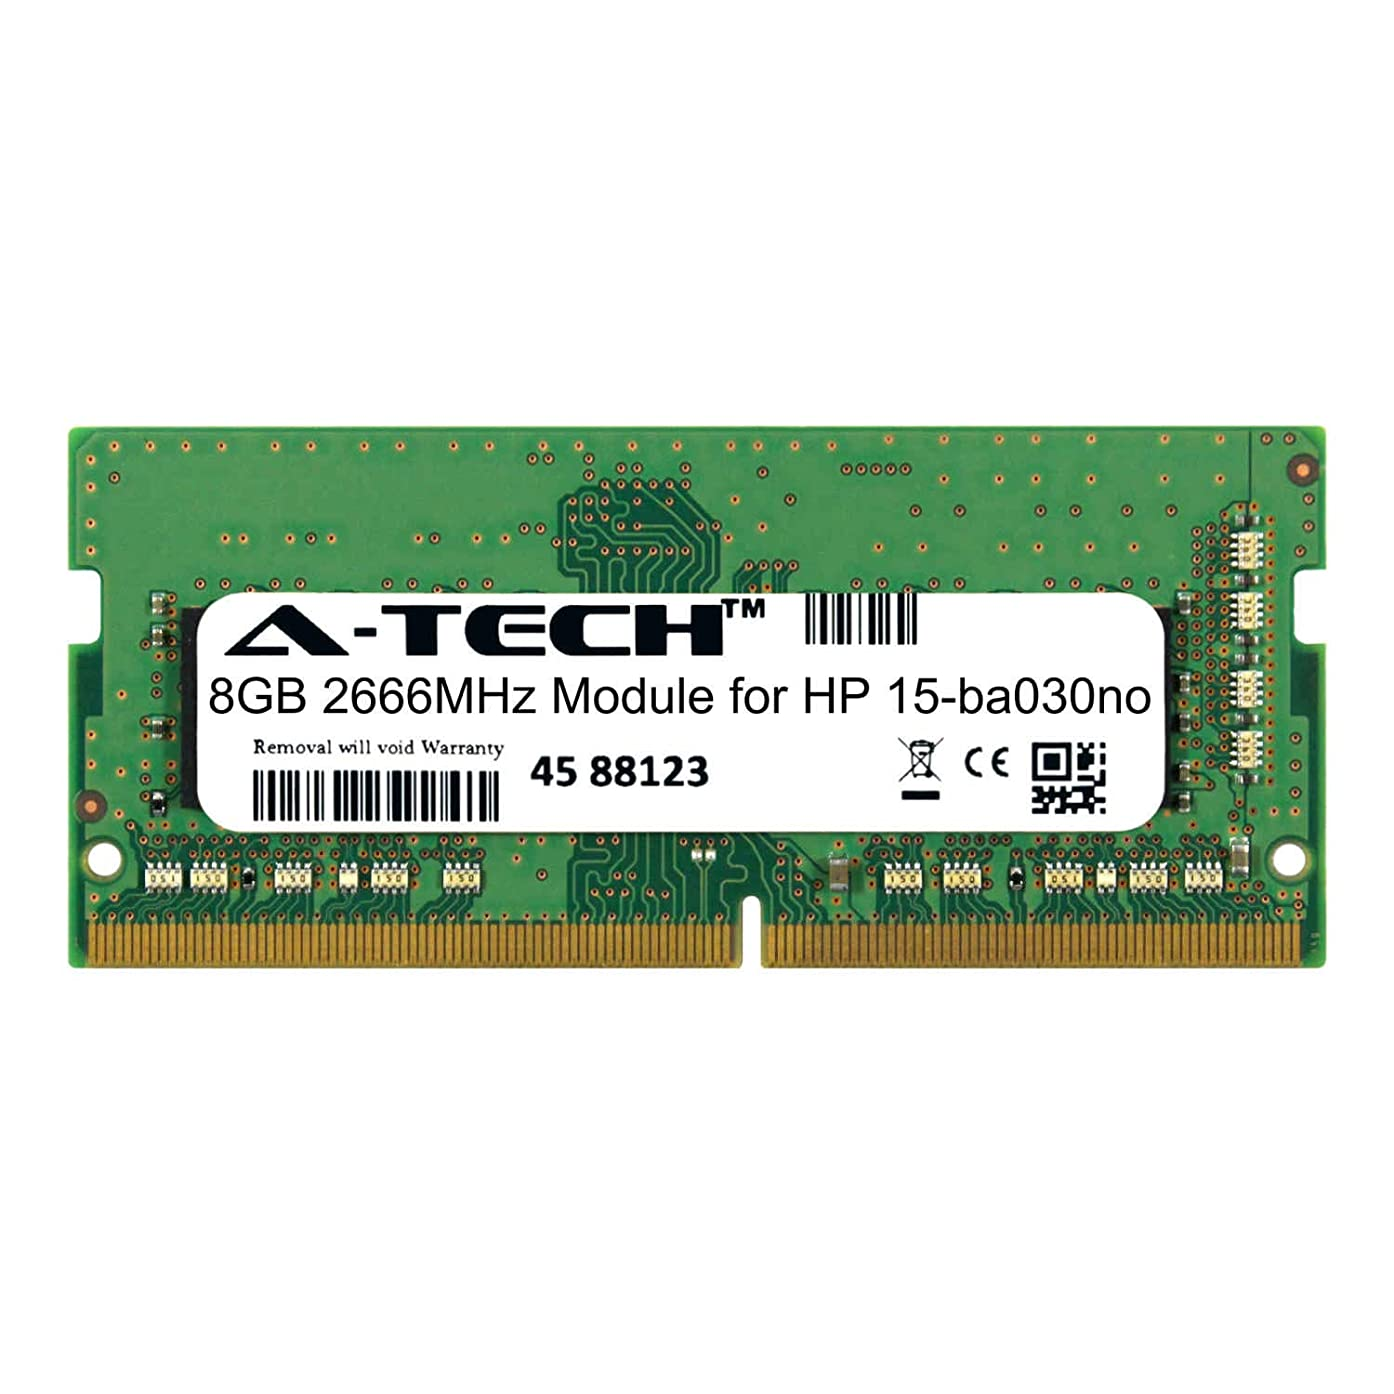 A-Tech 8GB Module for HP 15-ba030no Laptop & Notebook Compatible DDR4 2666Mhz Memory Ram (ATMS379808A25978X1)